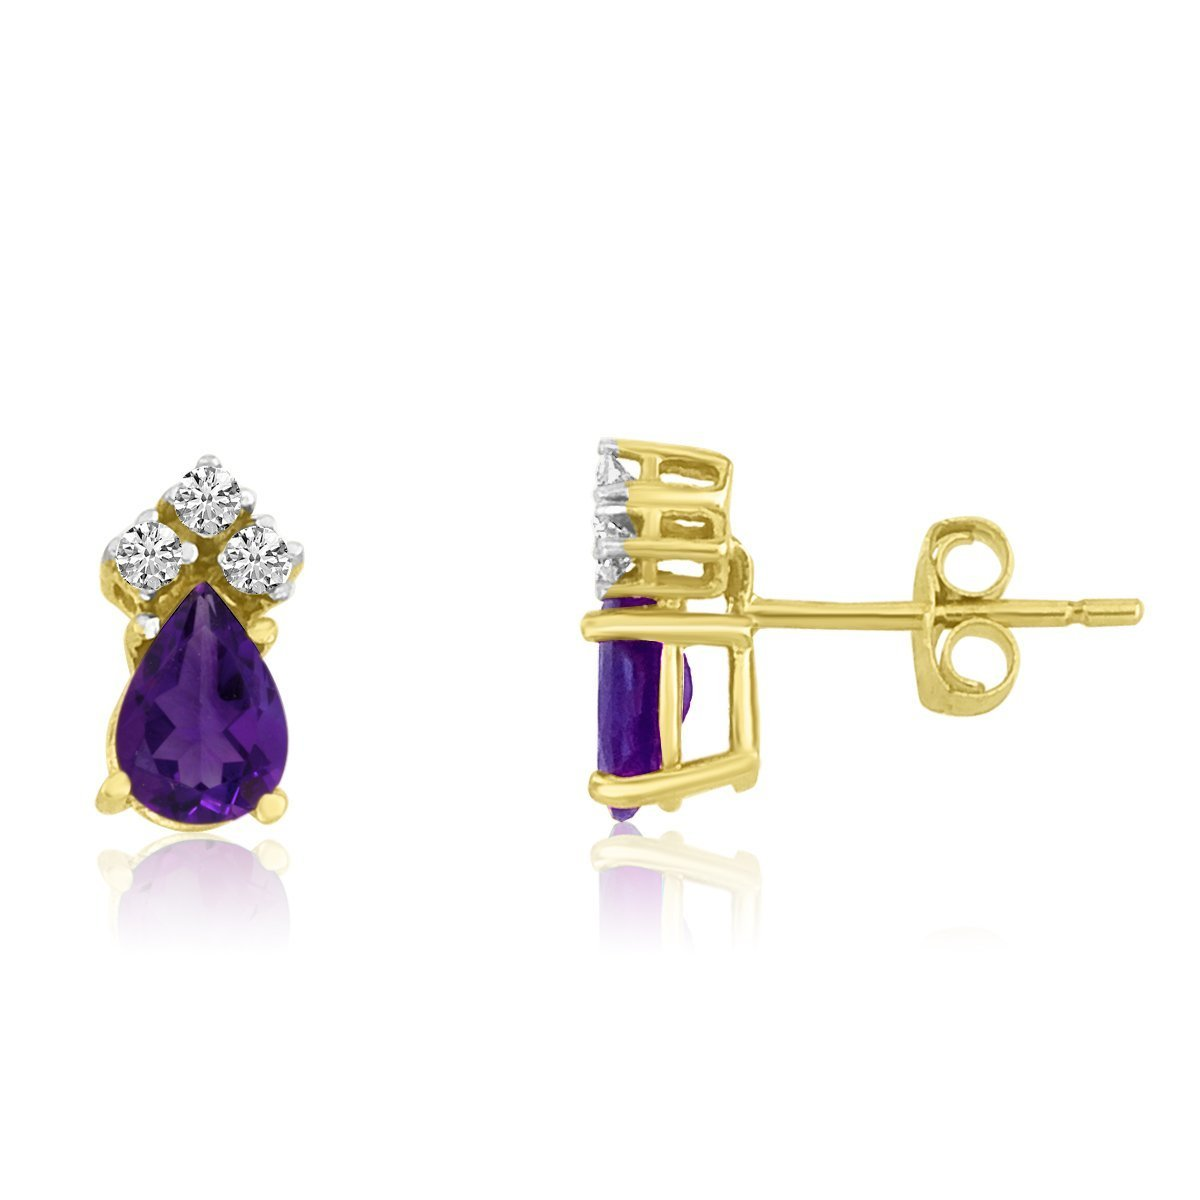 FB Jewels Solid 14k Yellow Gold Studs Pear Gemstone Earrings with Diamonds C08014128